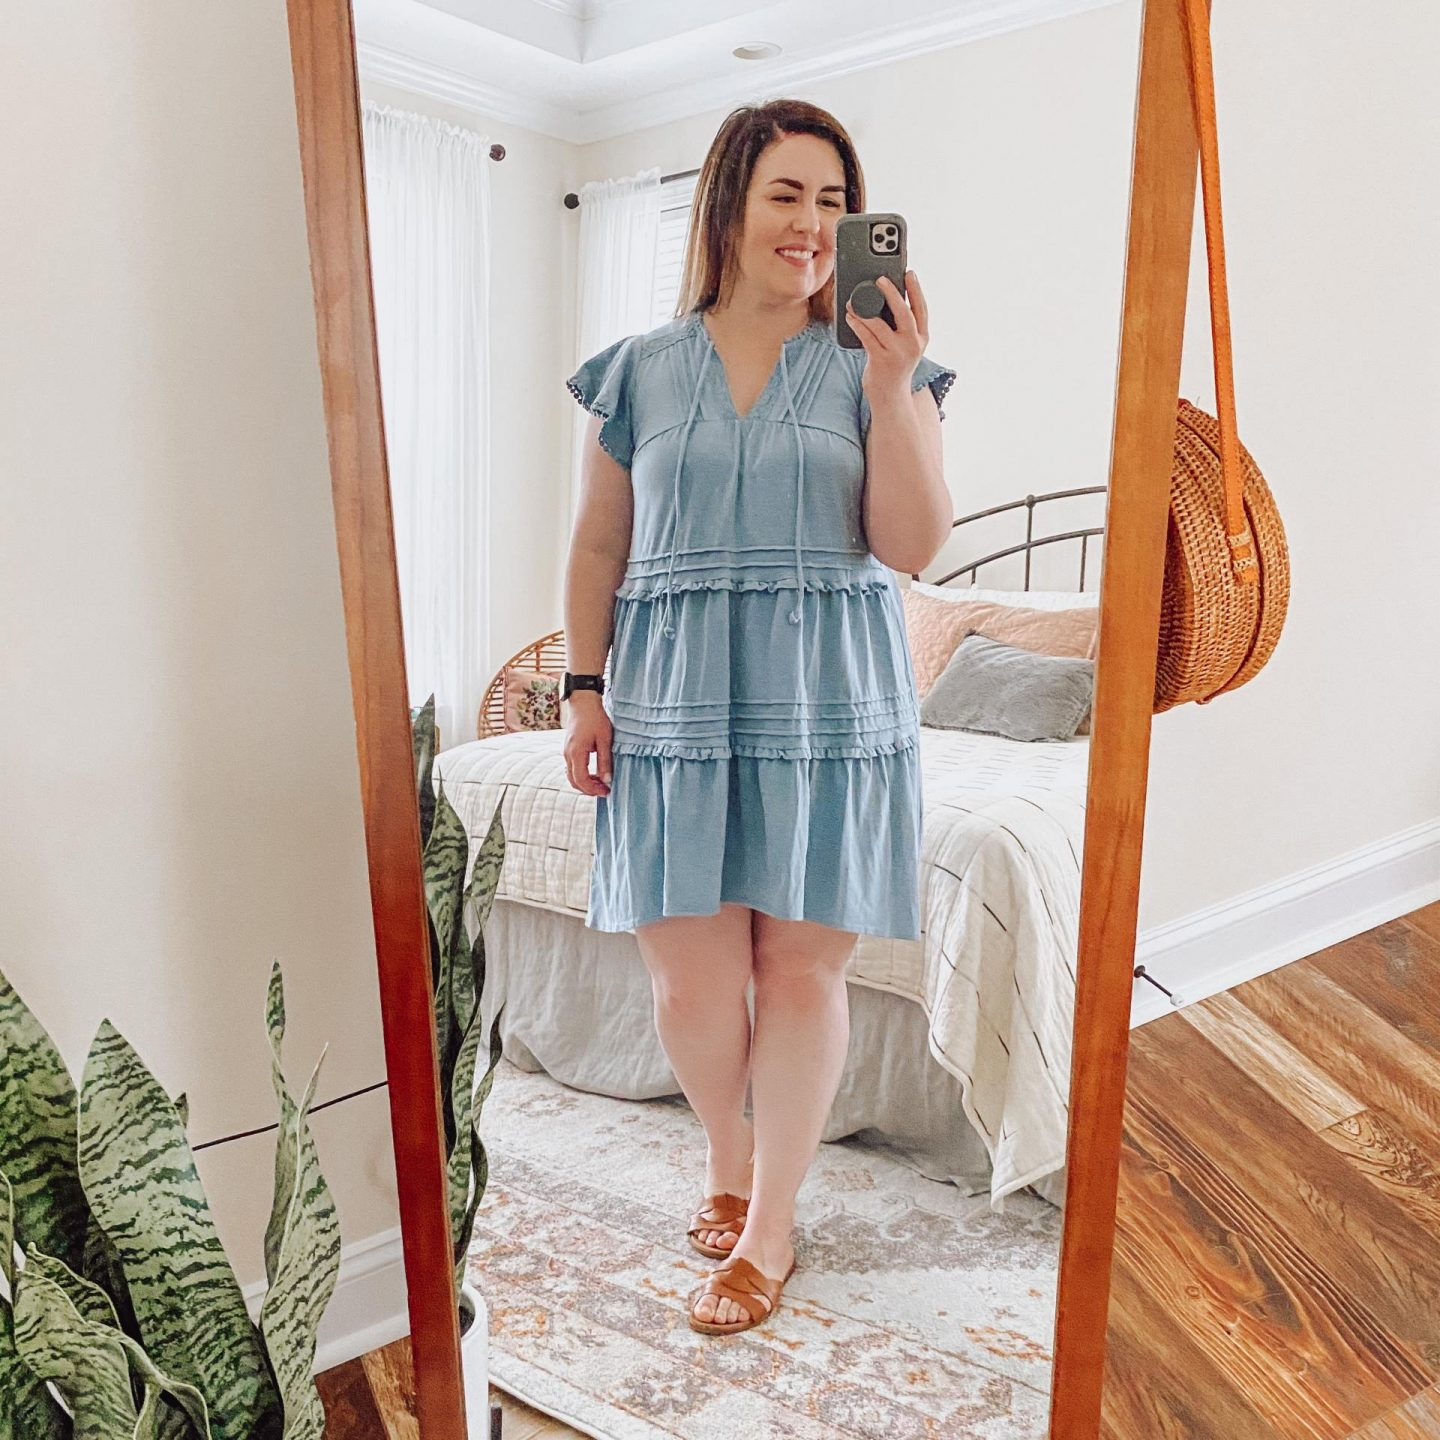 NC blogger Rebecca Lately is sharing her favorite spring dresses from Target. From chambray to florals, these will freshen up your wardrobe!